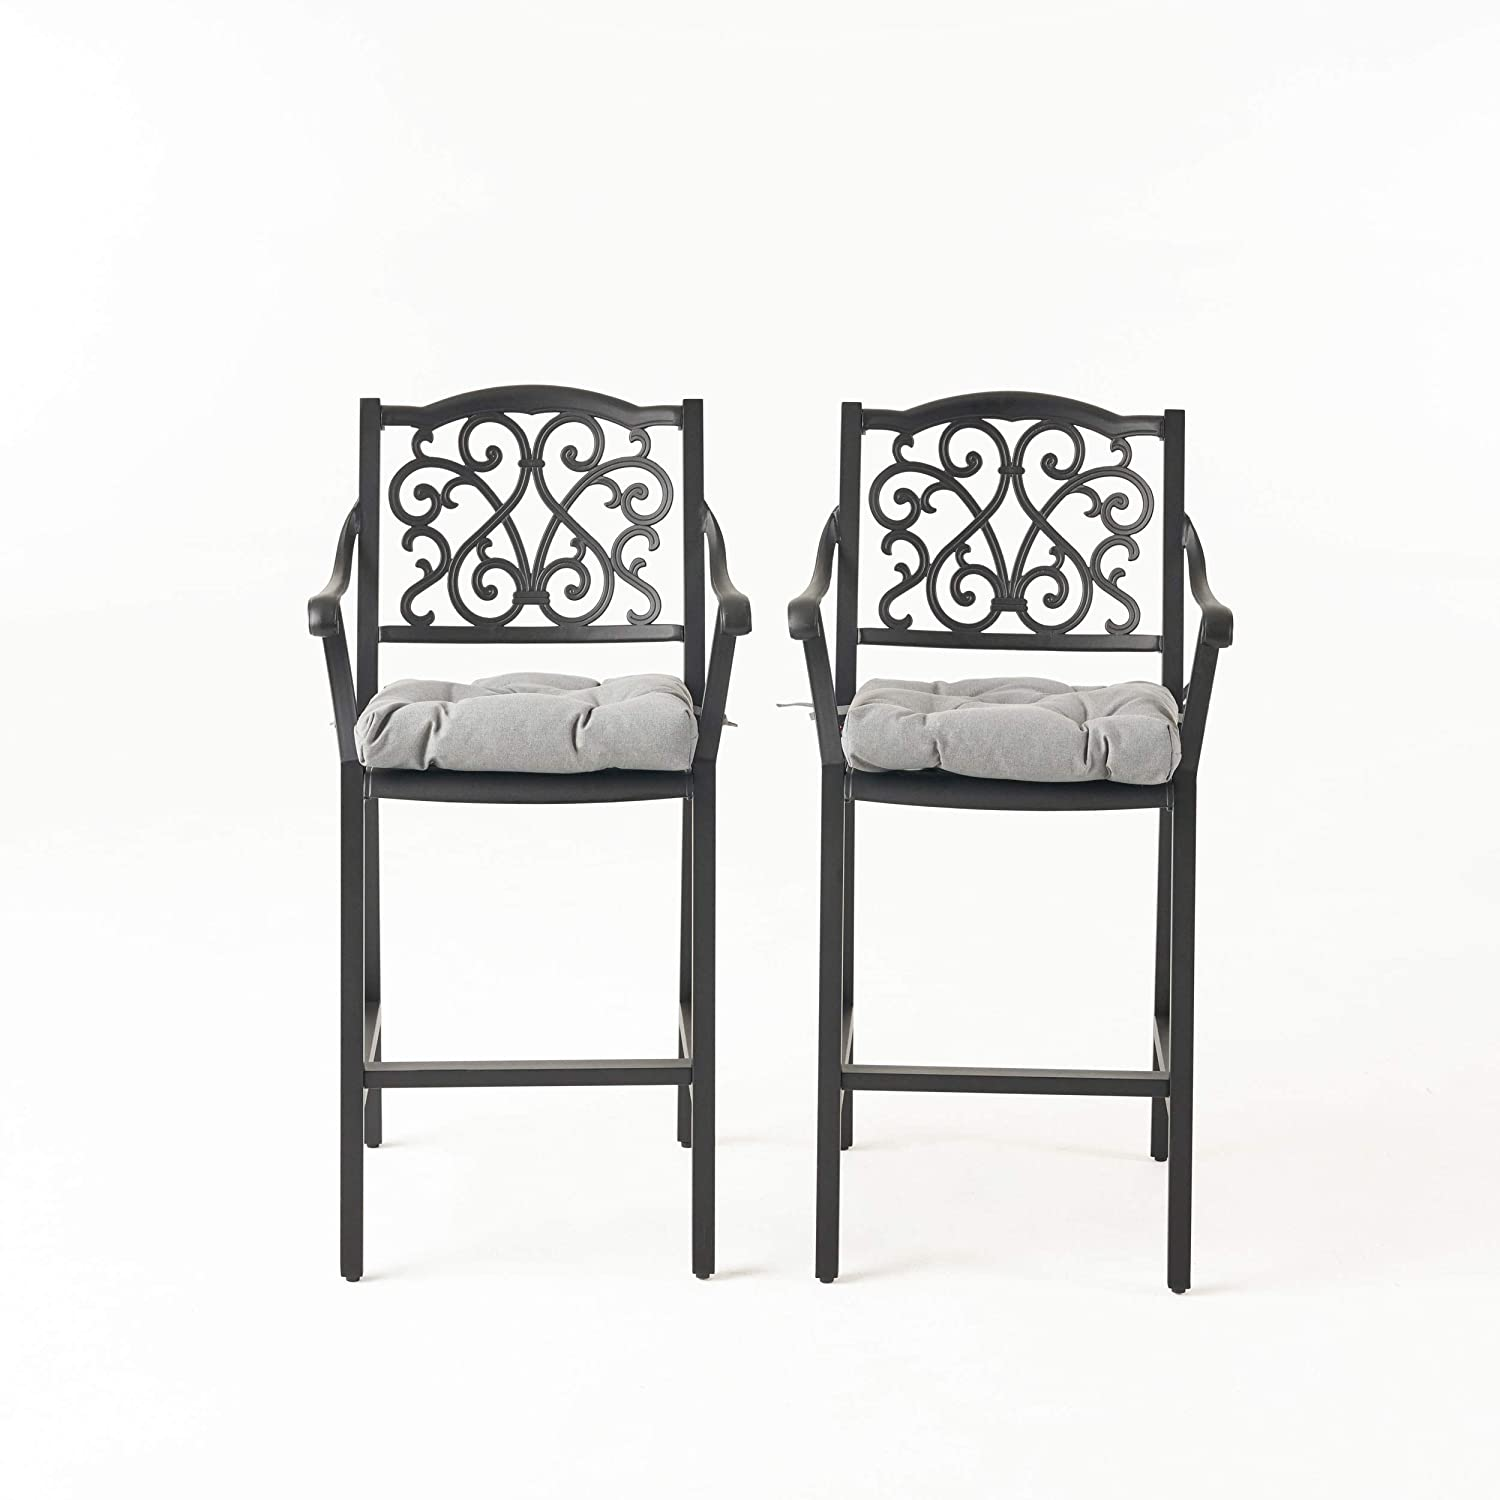 Great Deal Furniture Roberta Outdoor Barstool with Cushion (Set of 2) Antique Matte Black and Charcoal